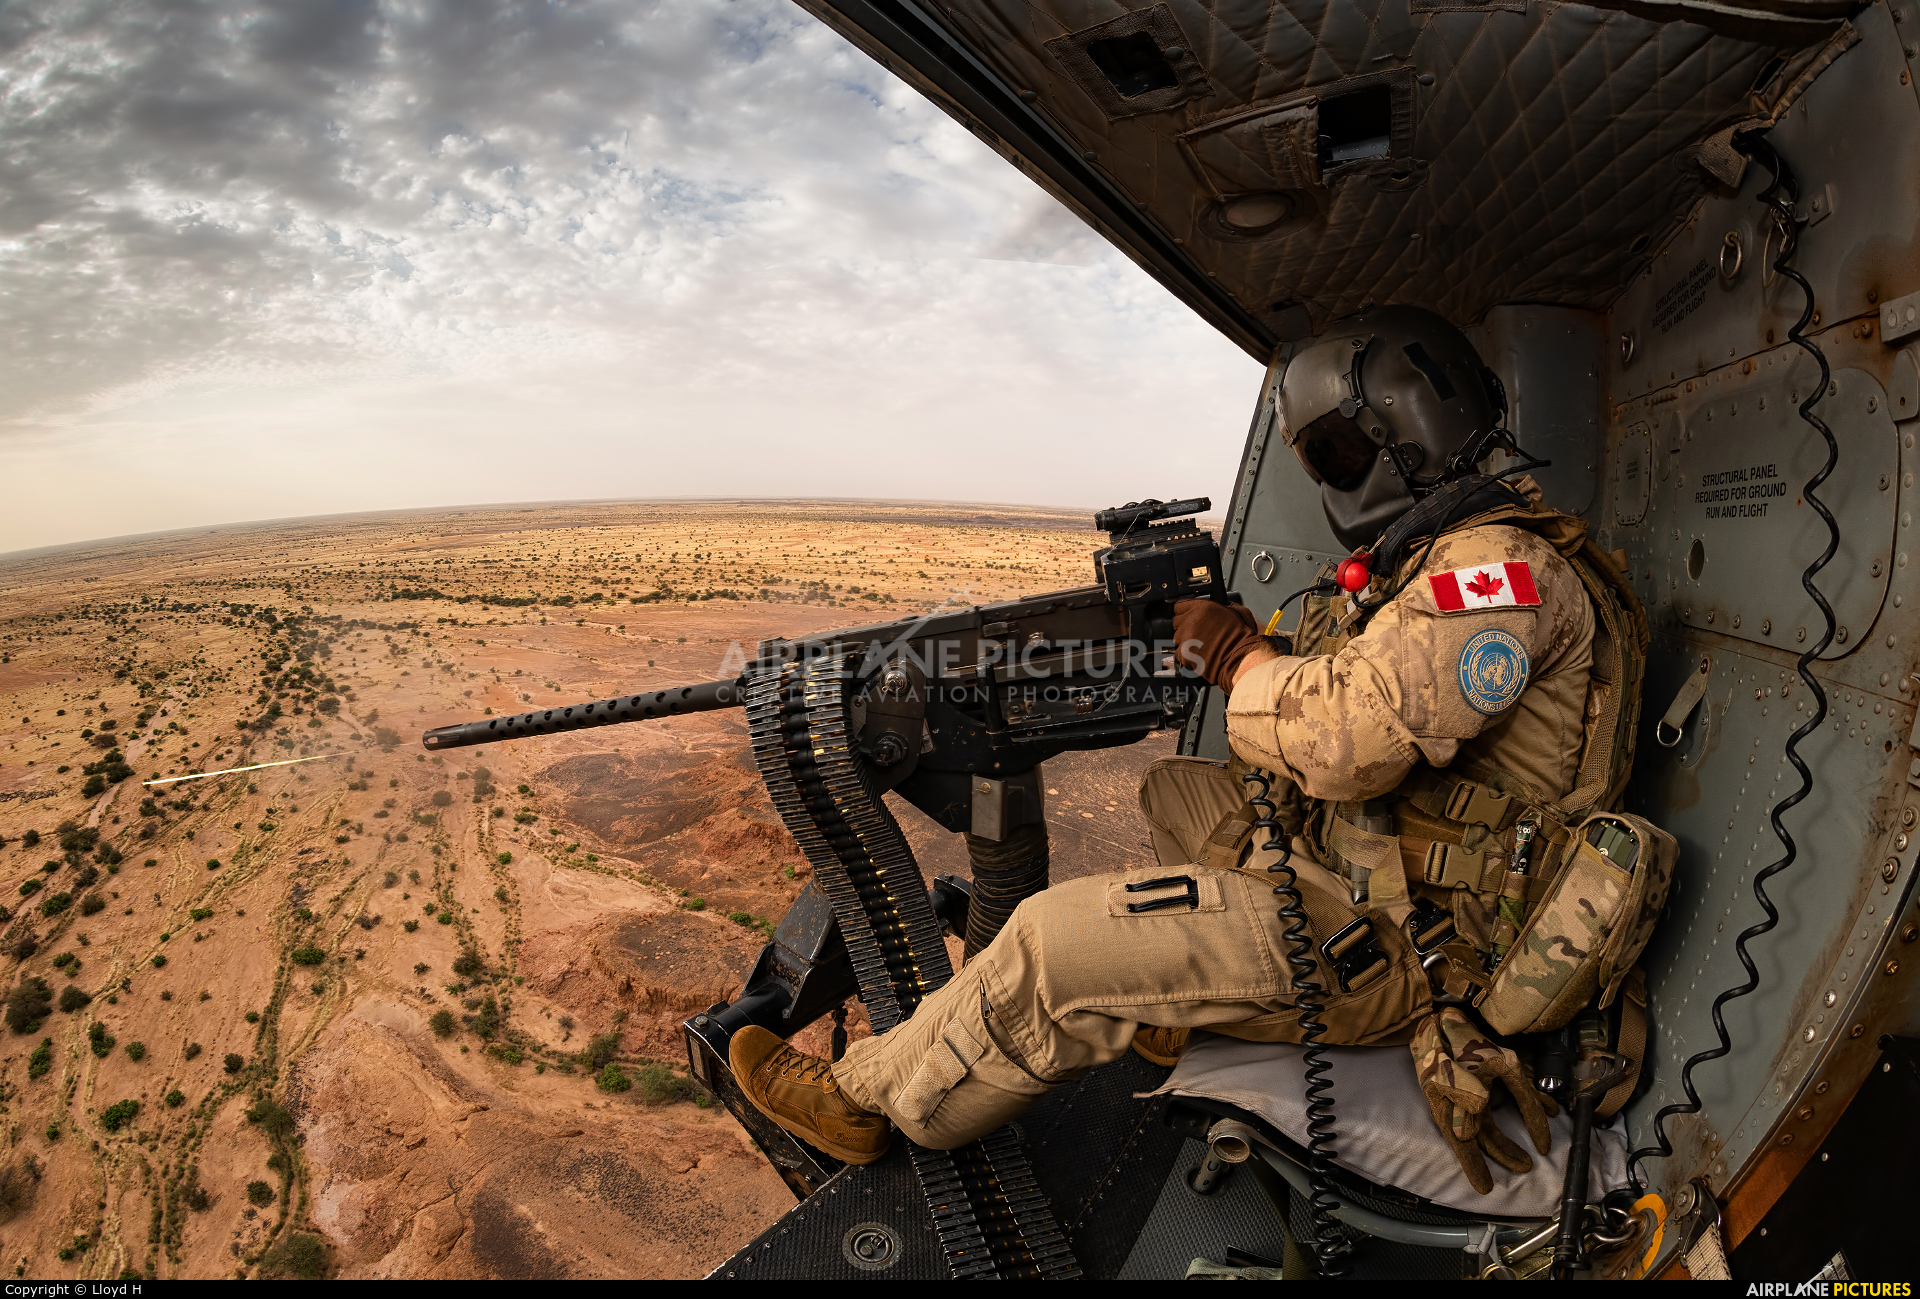 Canada - Air Force 146478 aircraft at In Flight - Mali